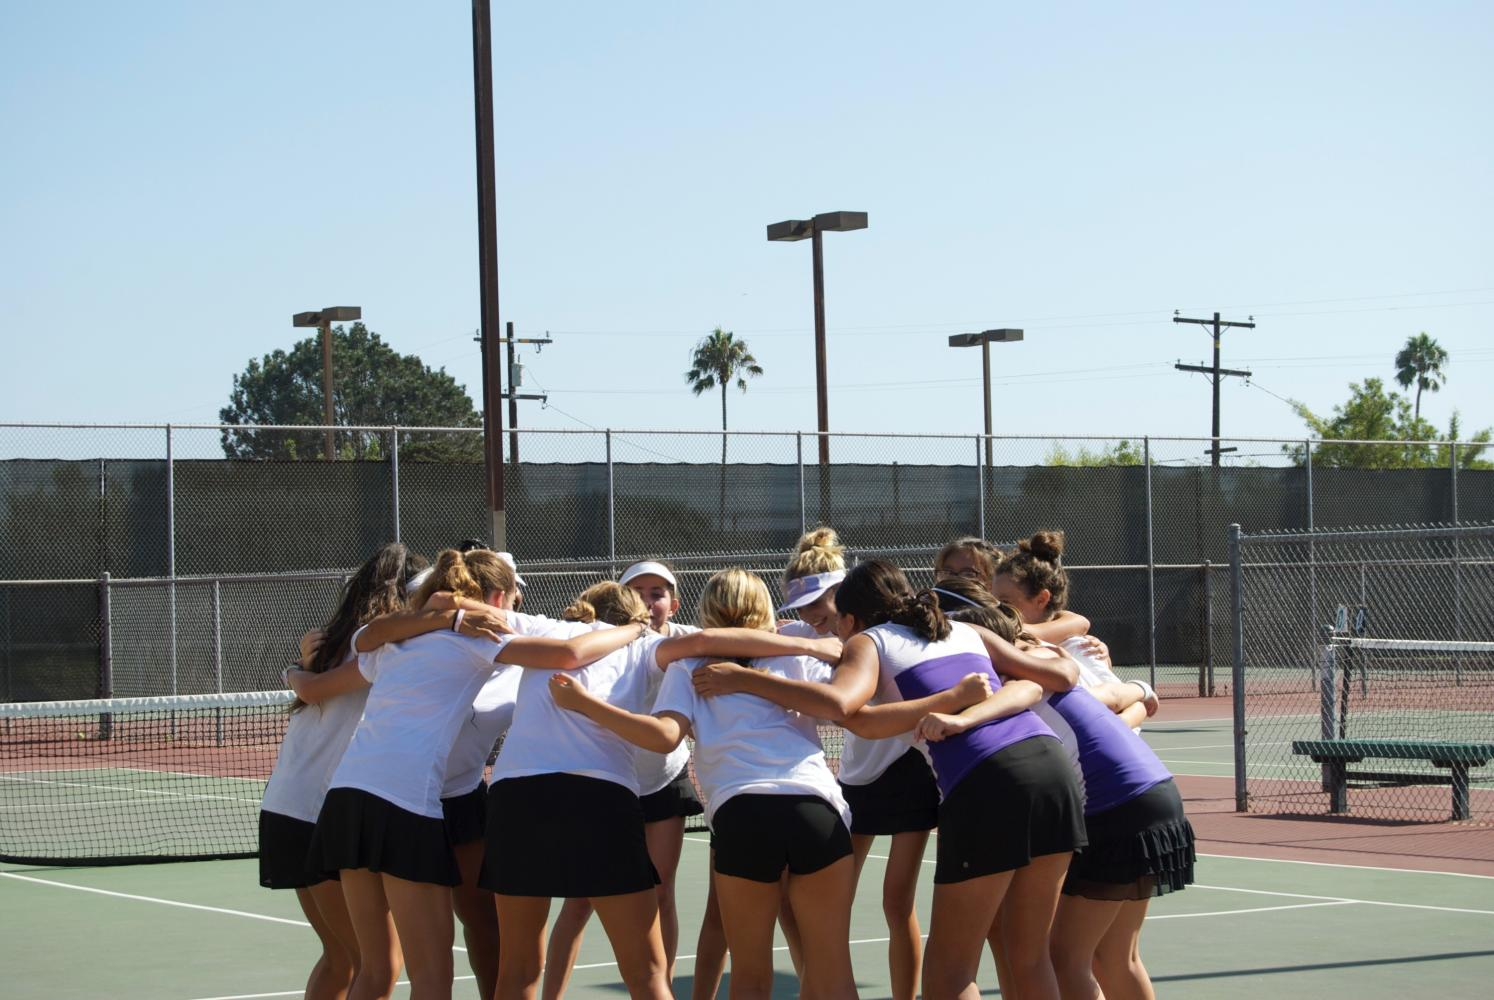 The JV girls' tennis team huddles up during their fall 2017 season.